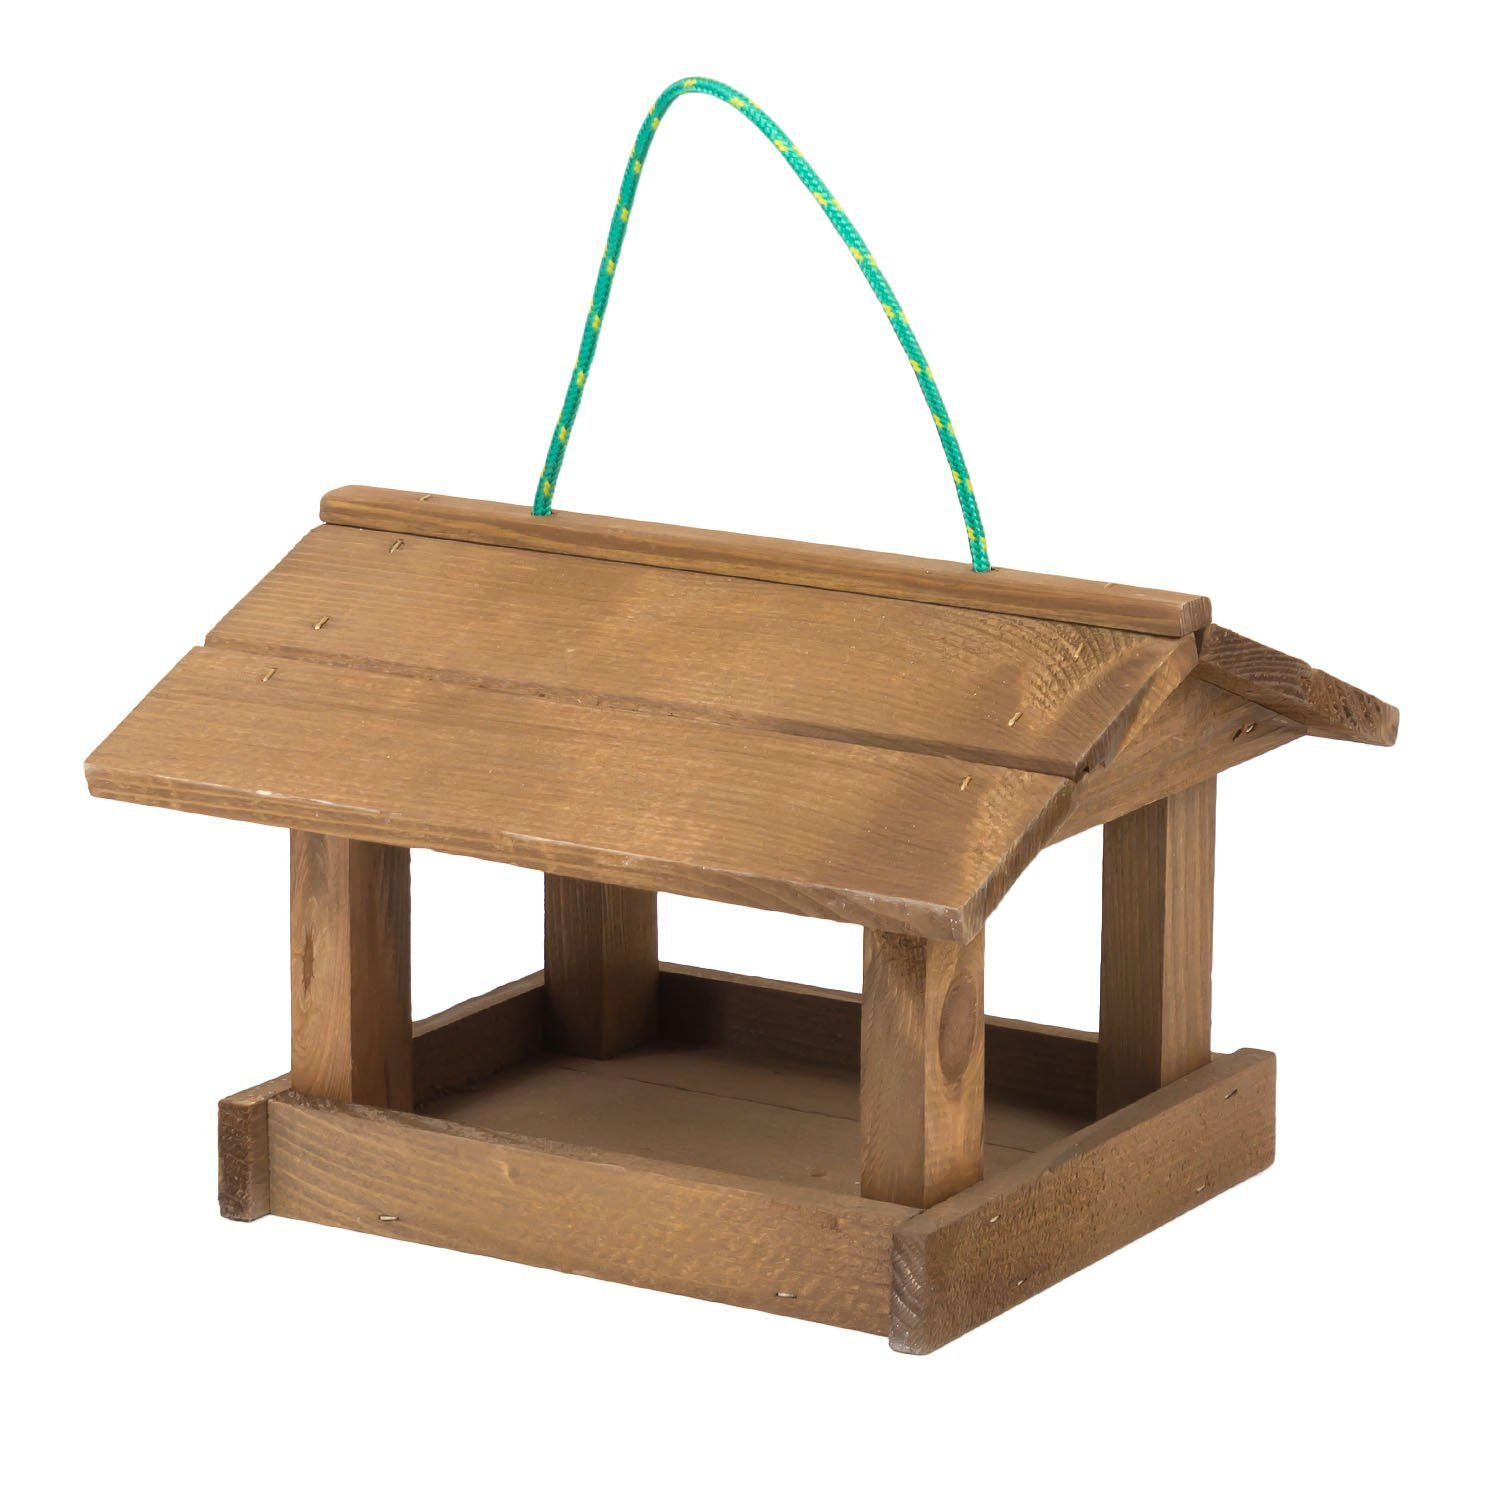 Eco Garden Hanging Wooden bird feeder feeding station table TINTOURS